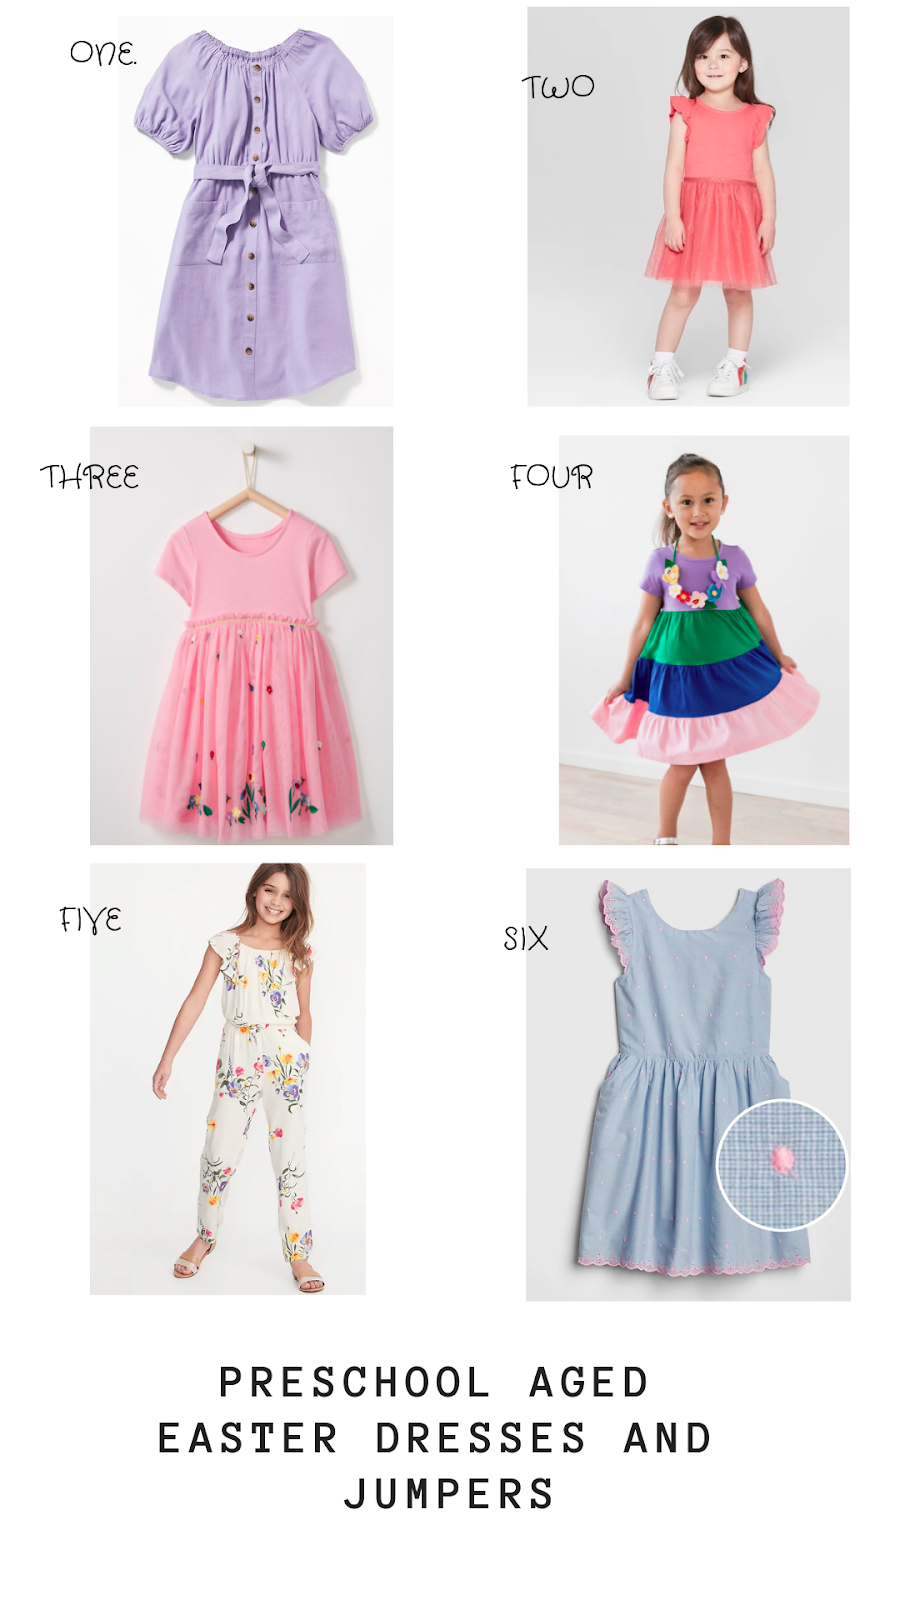 preschool aged Easter outfits